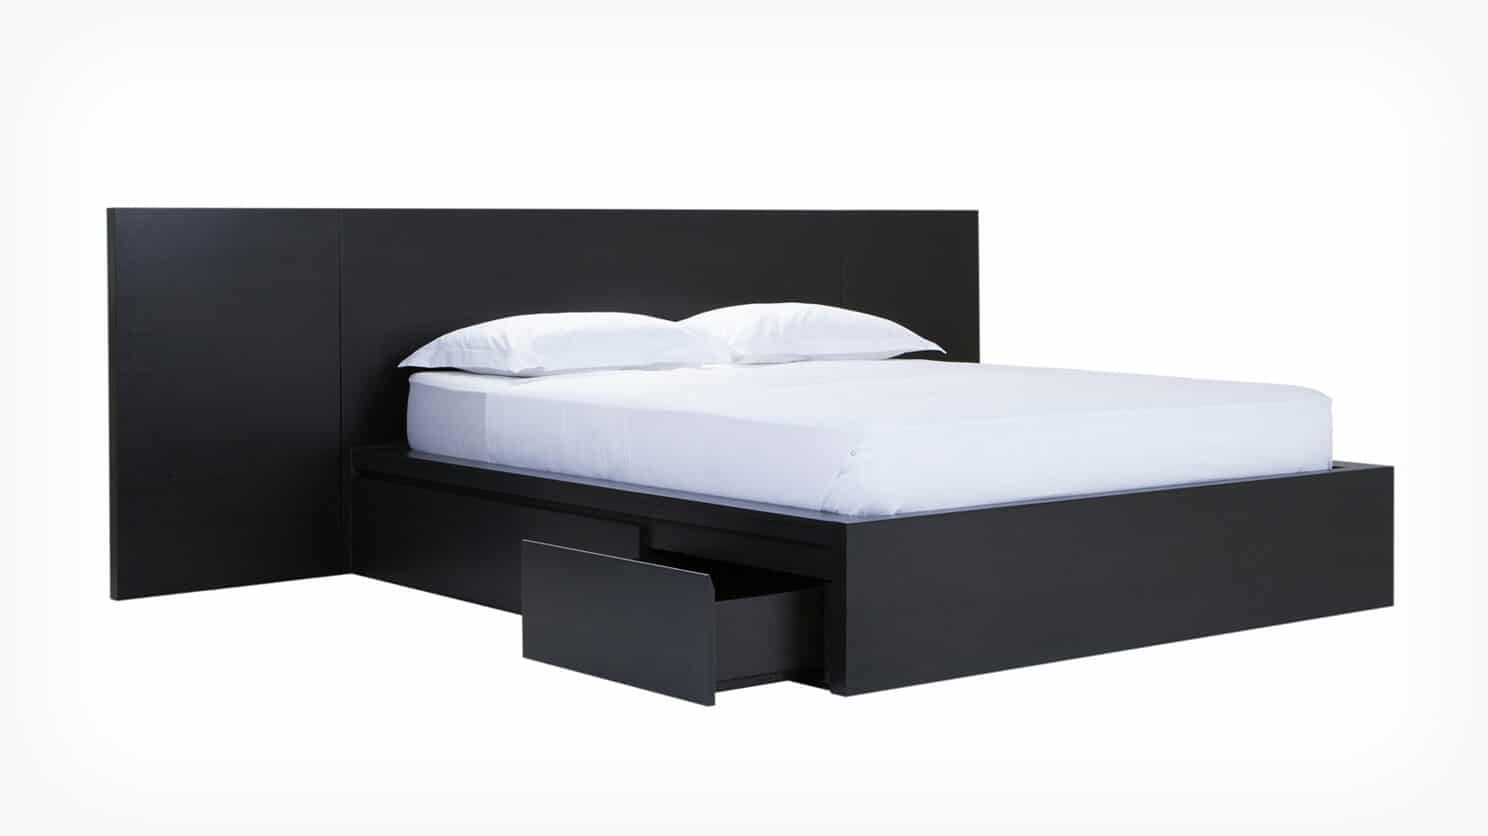 6020 962 pe 2 beds simple bed onyx corner w extended hb w drawers